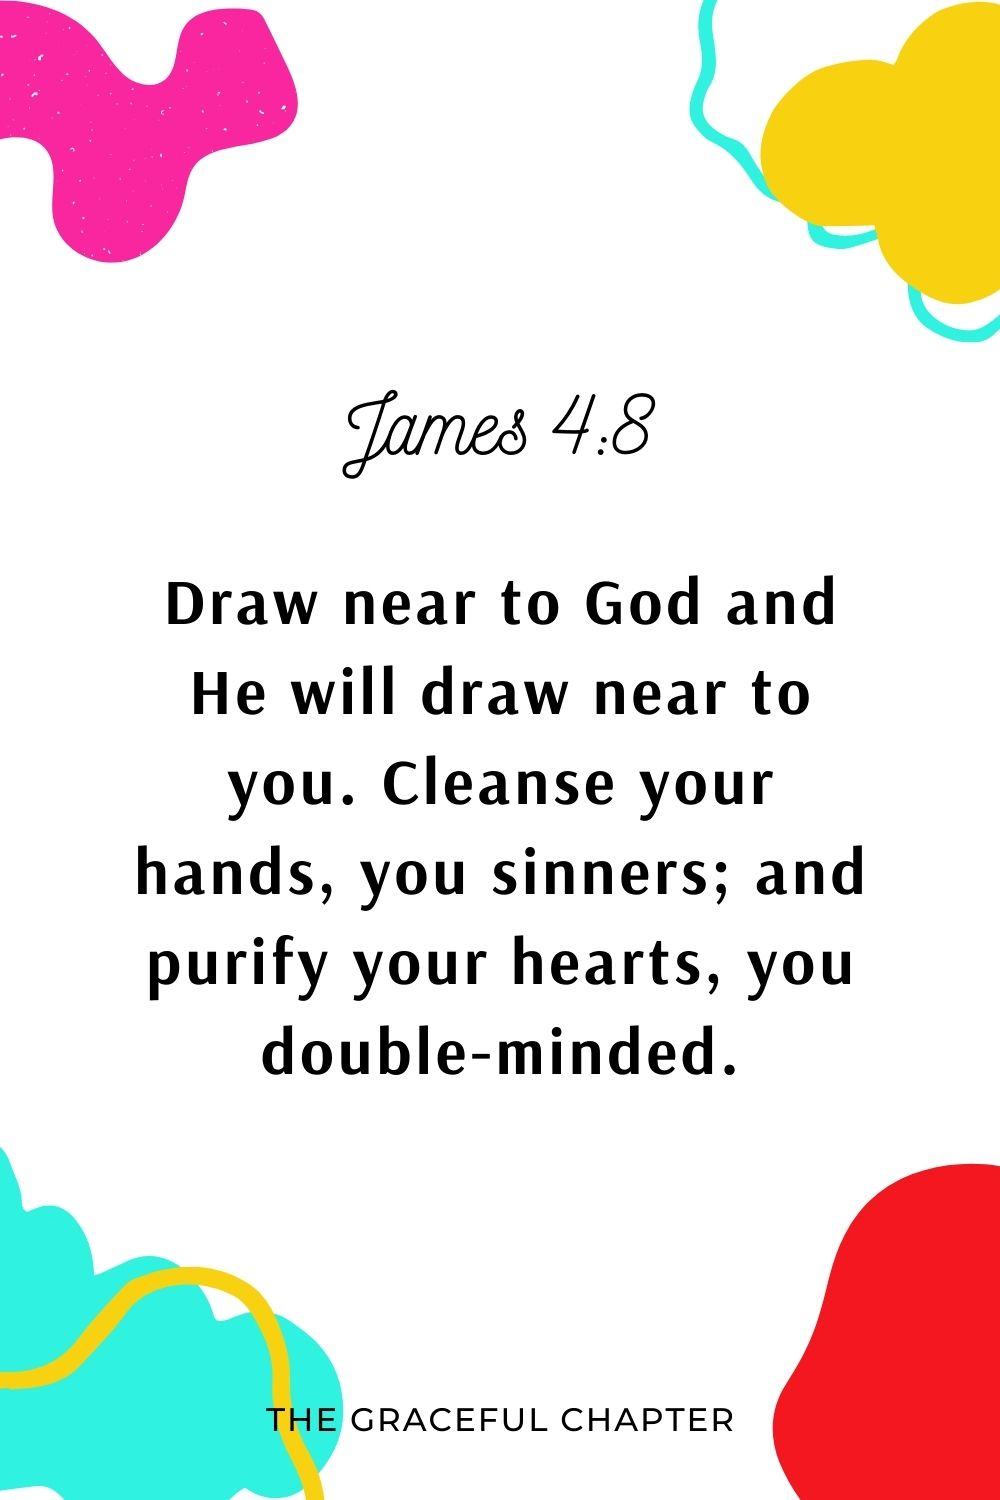 Draw near to God and He will draw near to you. Cleanse your hands, you sinners; and purify your hearts, you double-minded. James 4:8